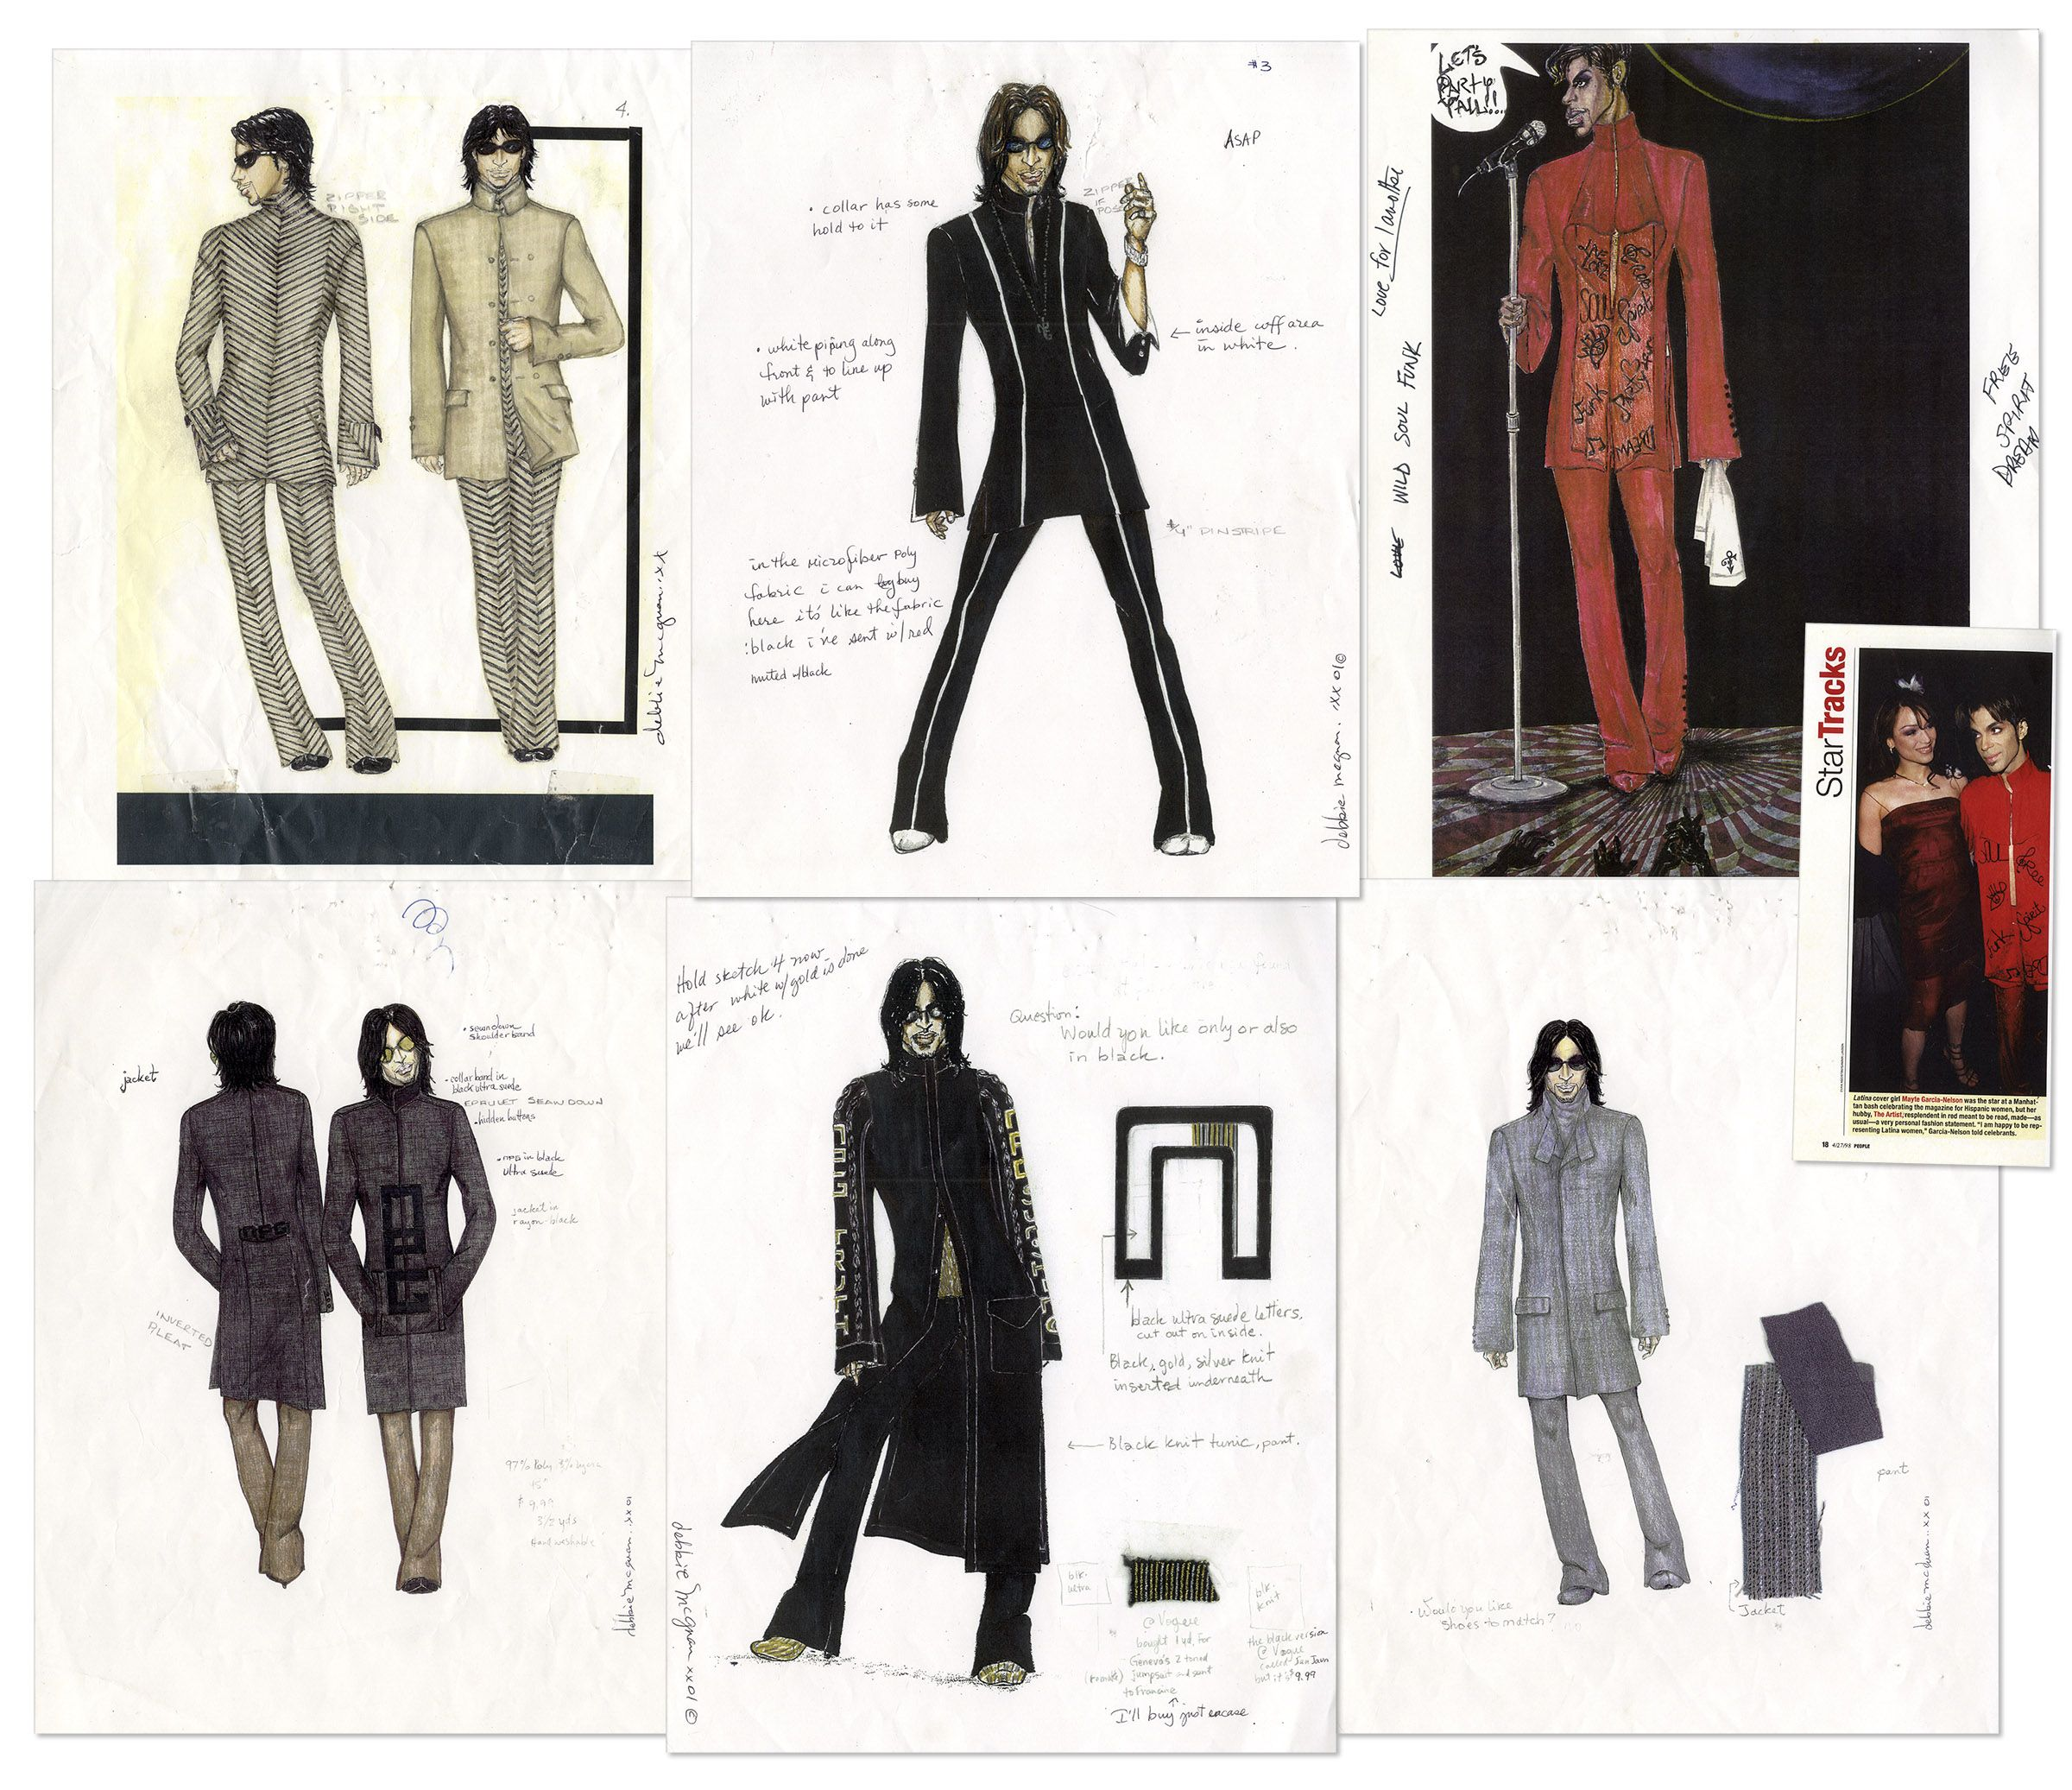 Six fashion illustrations used to fabricate clothing for Prince. As stated in the LOA from Prince